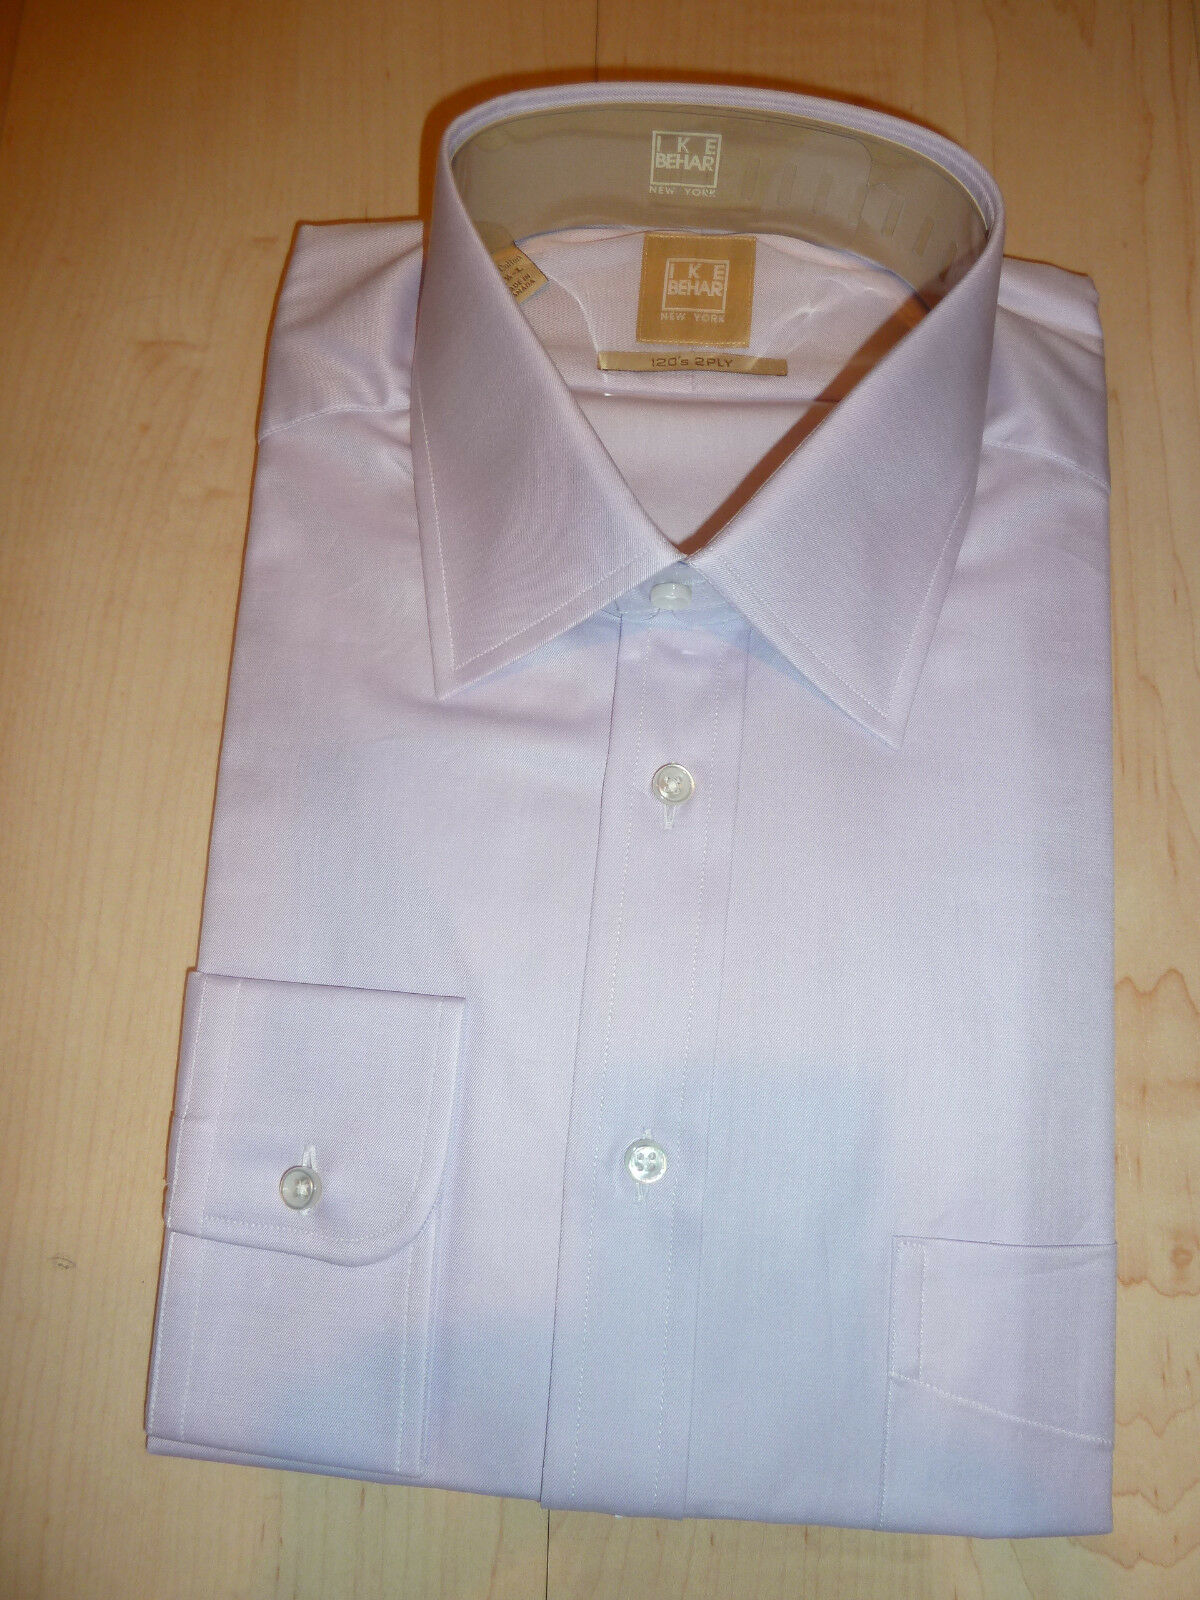 NEW 220+ IKE BEHAR  Herren Dress SHIRT 15.5 L 34 35 Lavender Canada Cotton GOLD BC